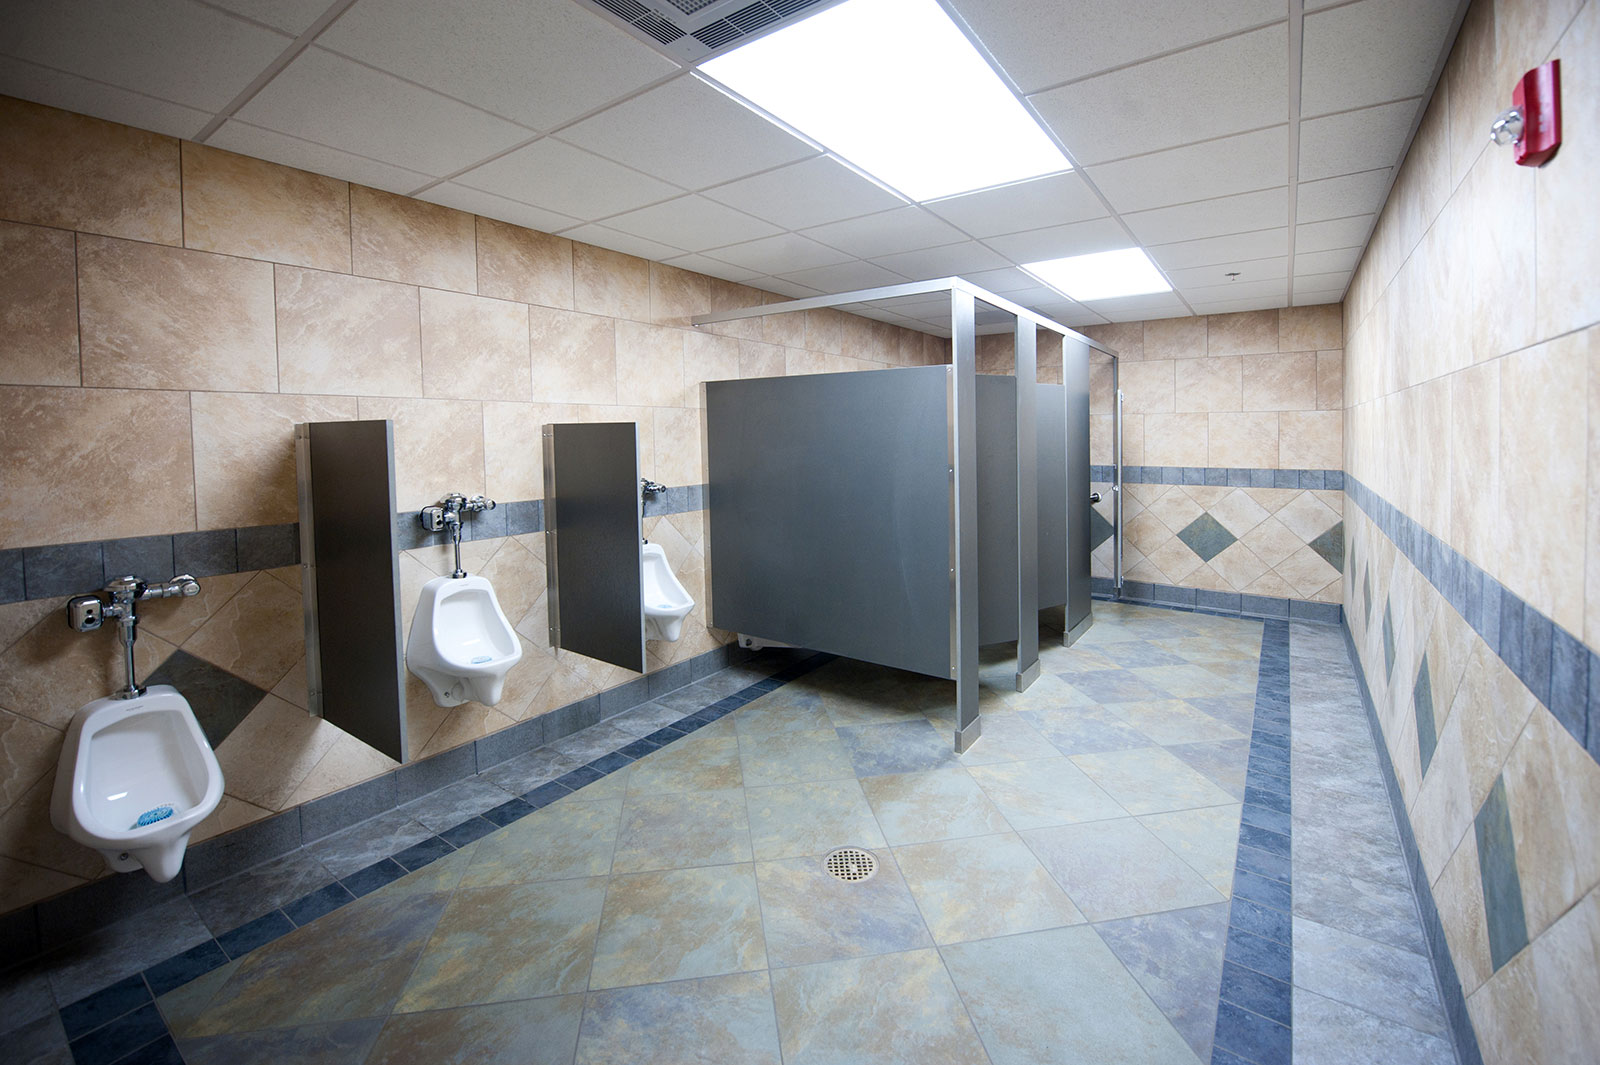 Restroom with toilets and urinals at a commercial facility